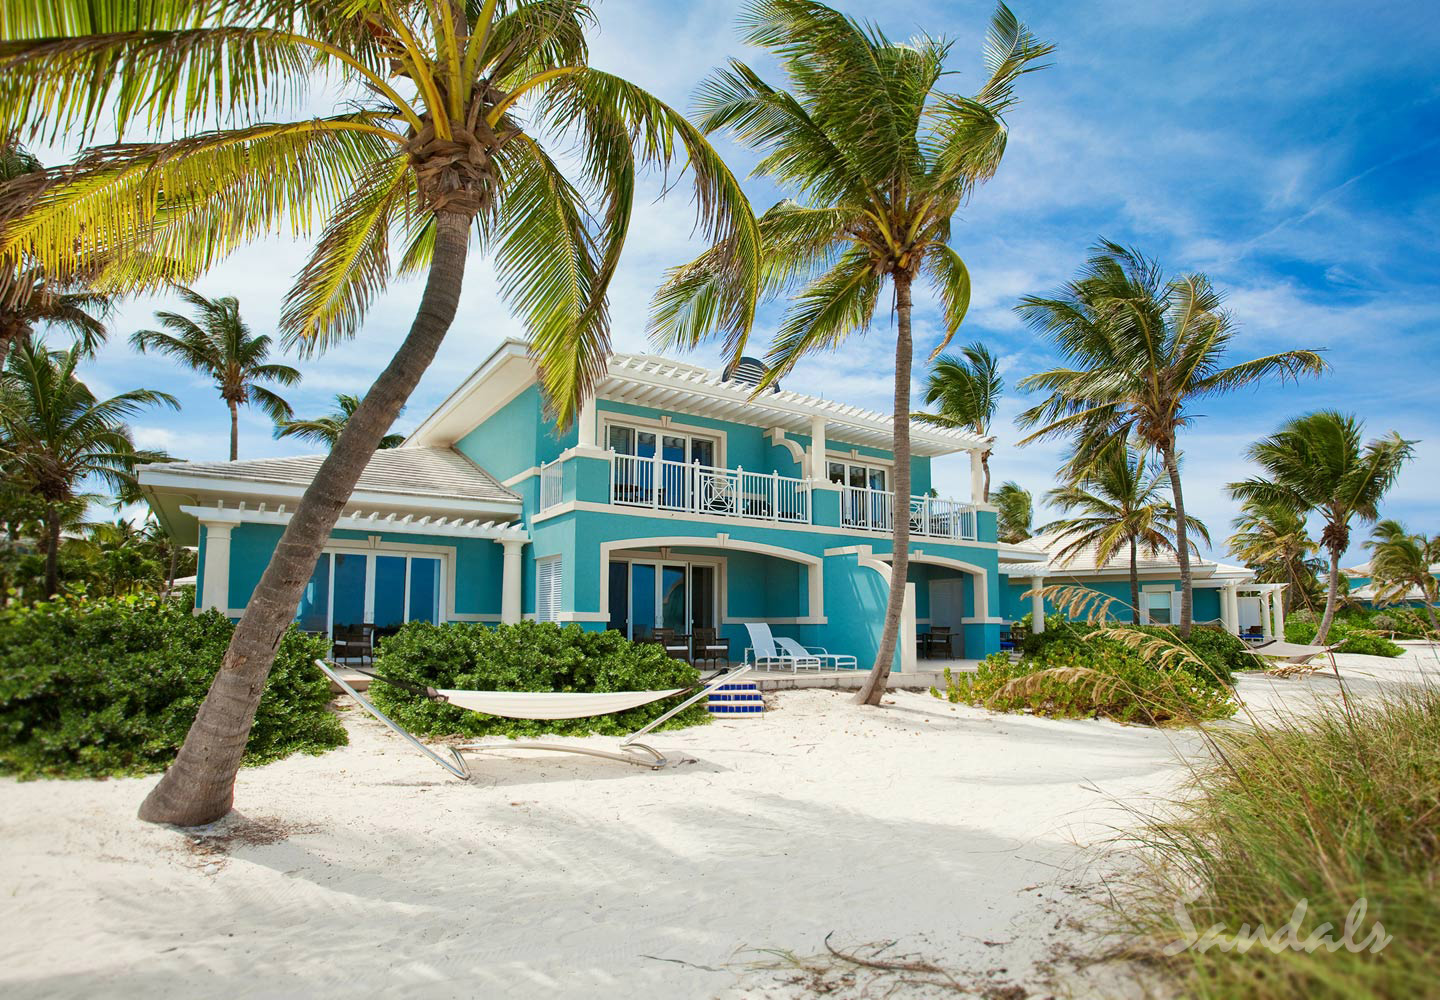 Travel Agency All-Inclusive Resort Sandals Emerald Bay 028